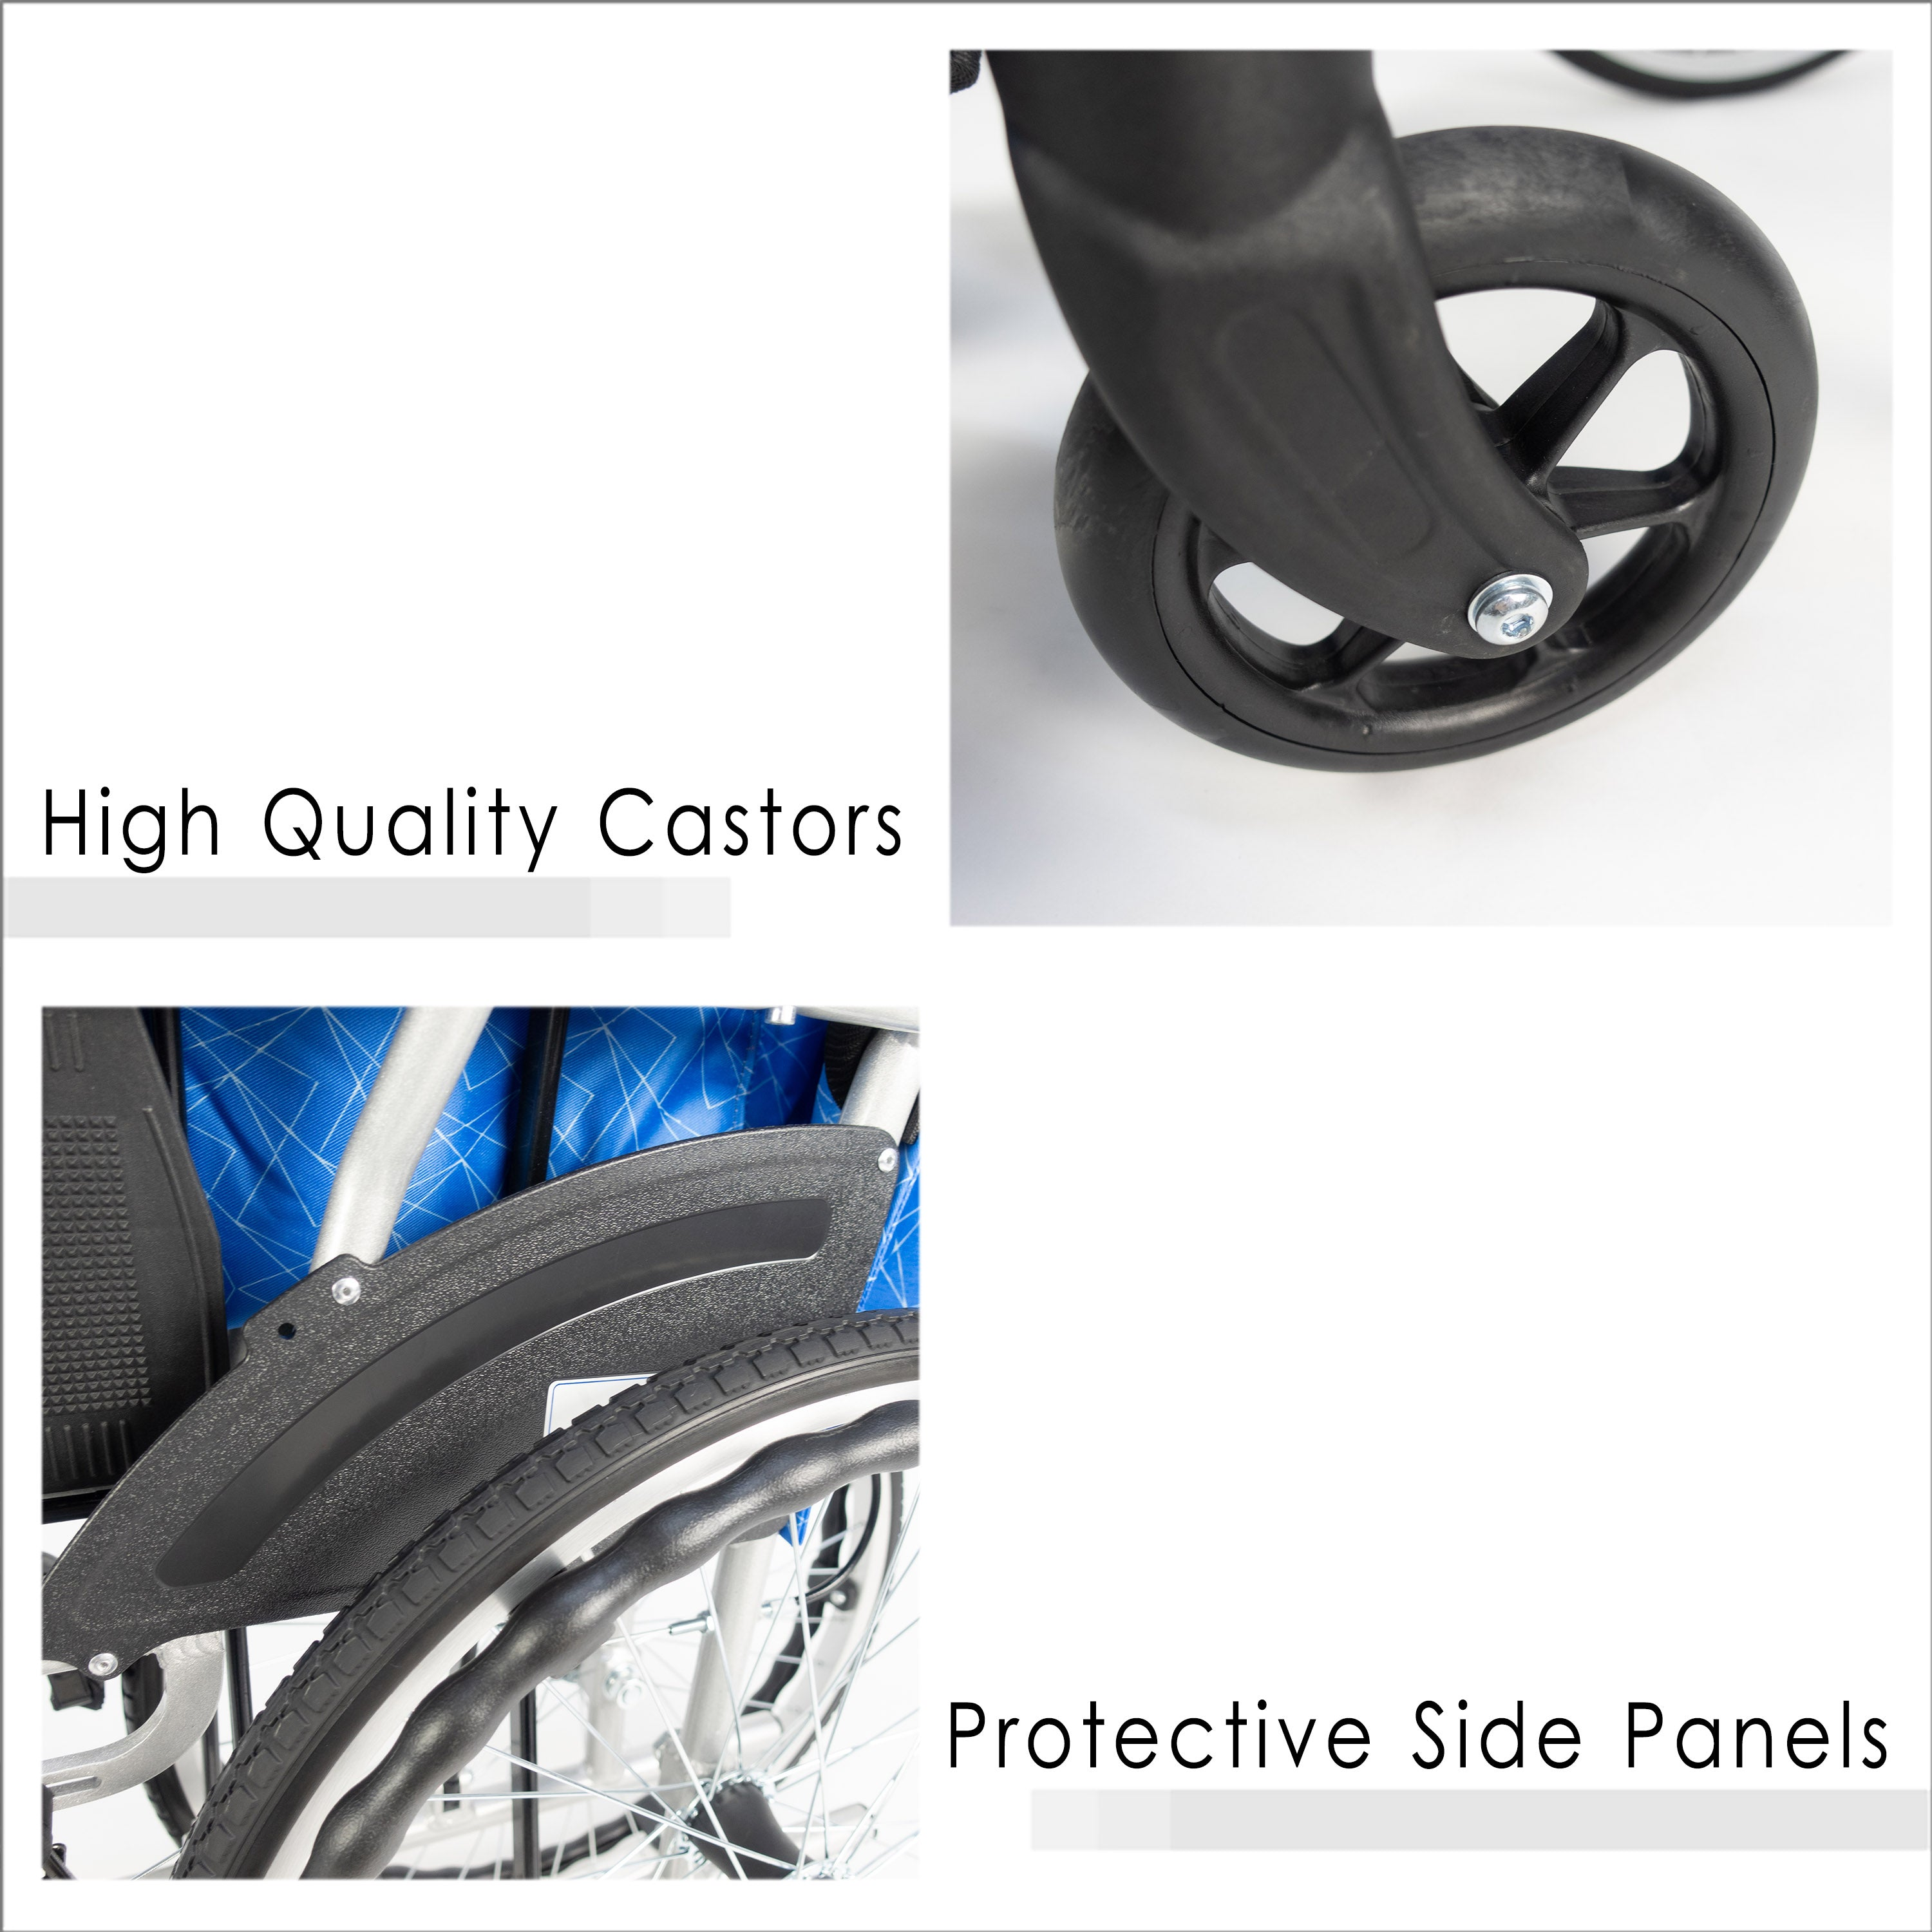 High Quality Castors and Protective Side Panels